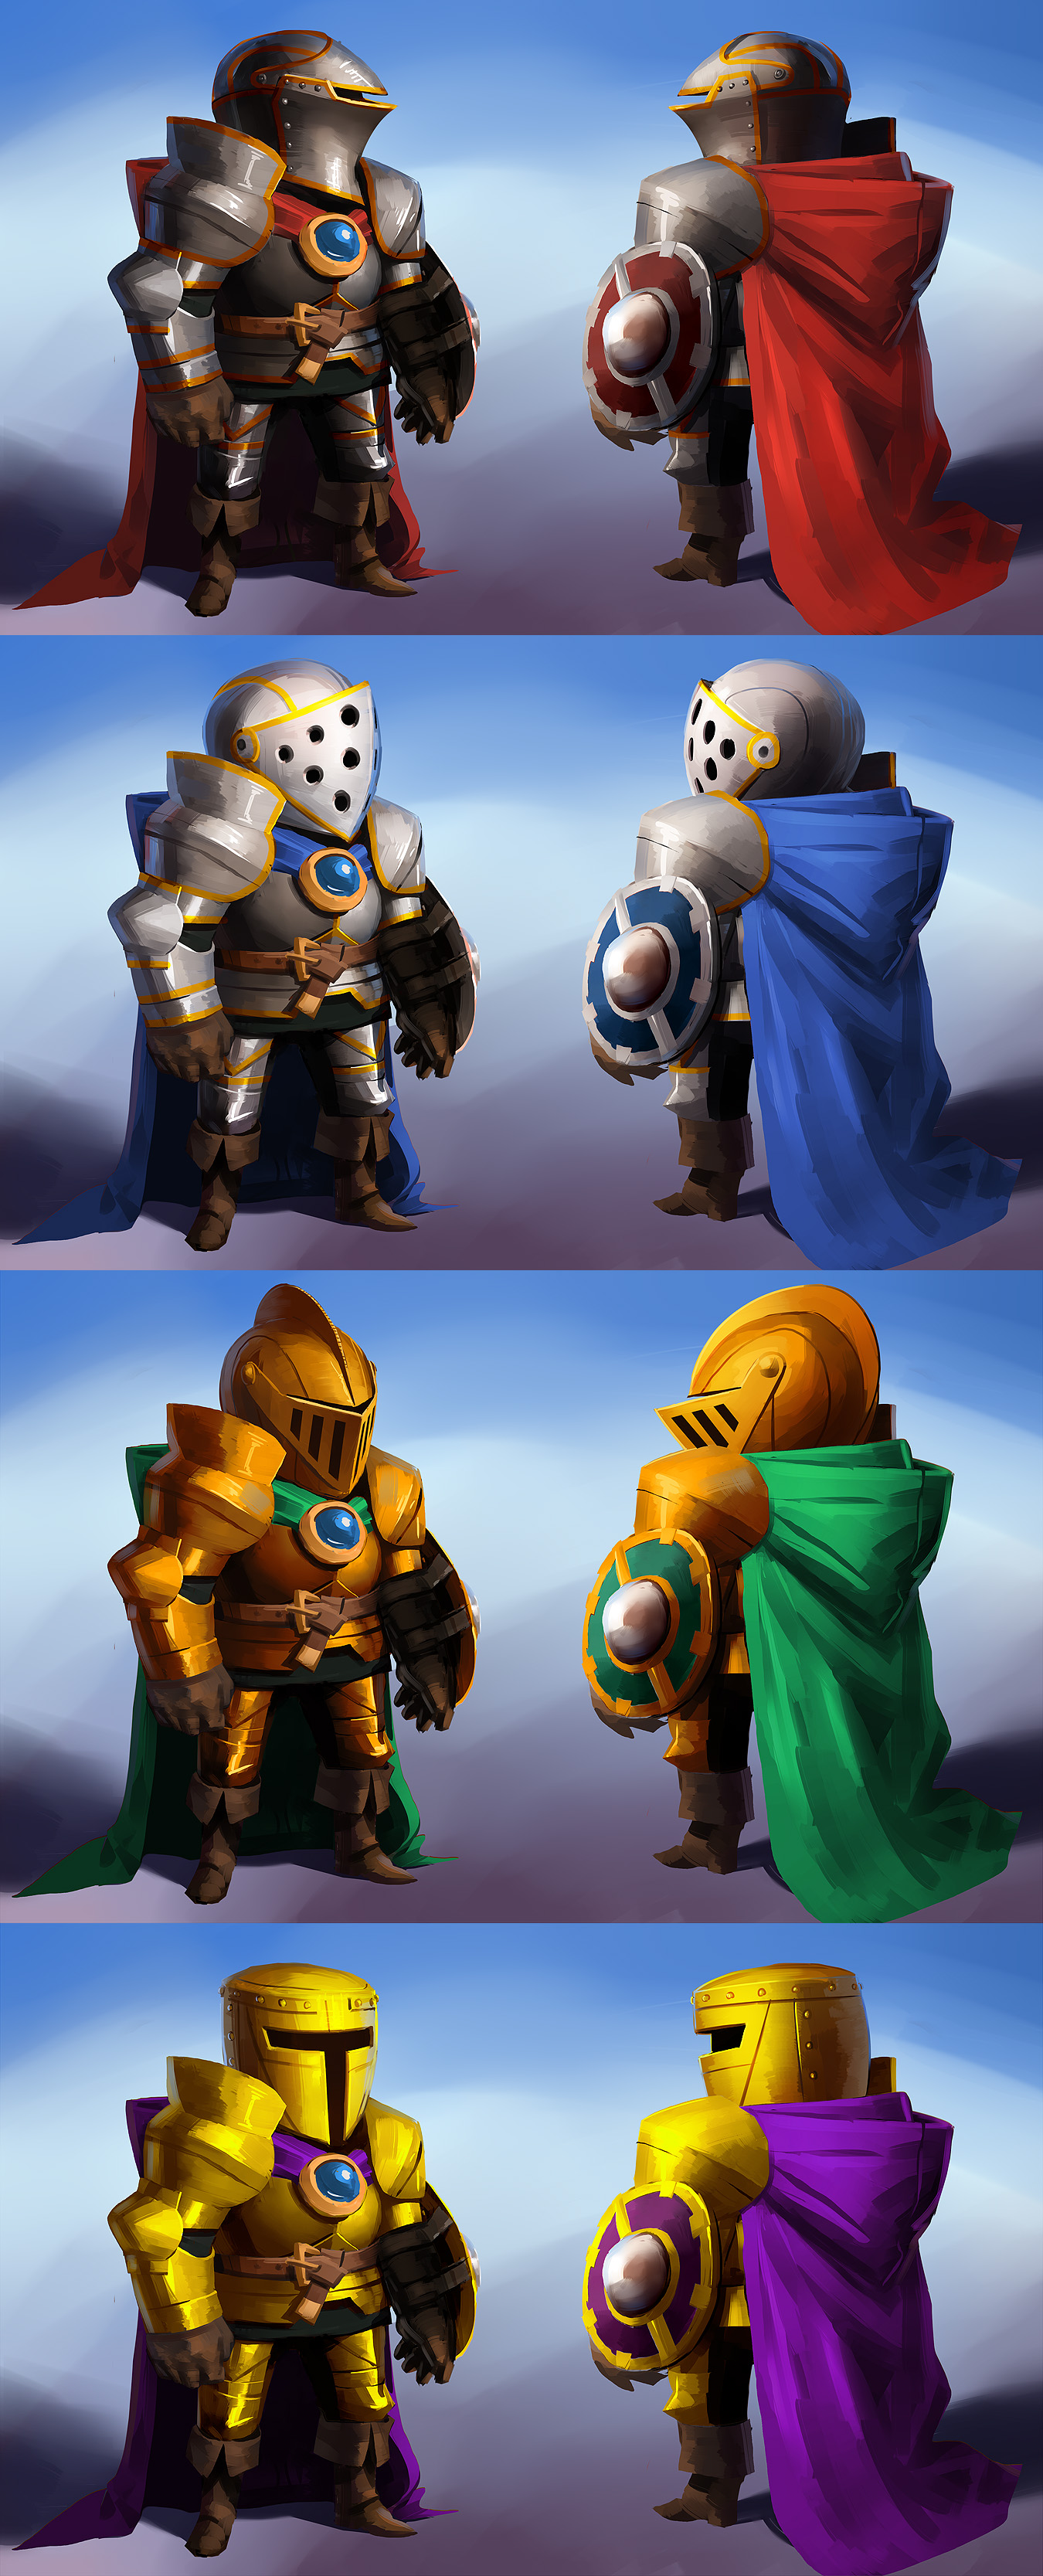 cape_chronicles___final_knight_concepts_by_makkon-d5orrtm.jpg